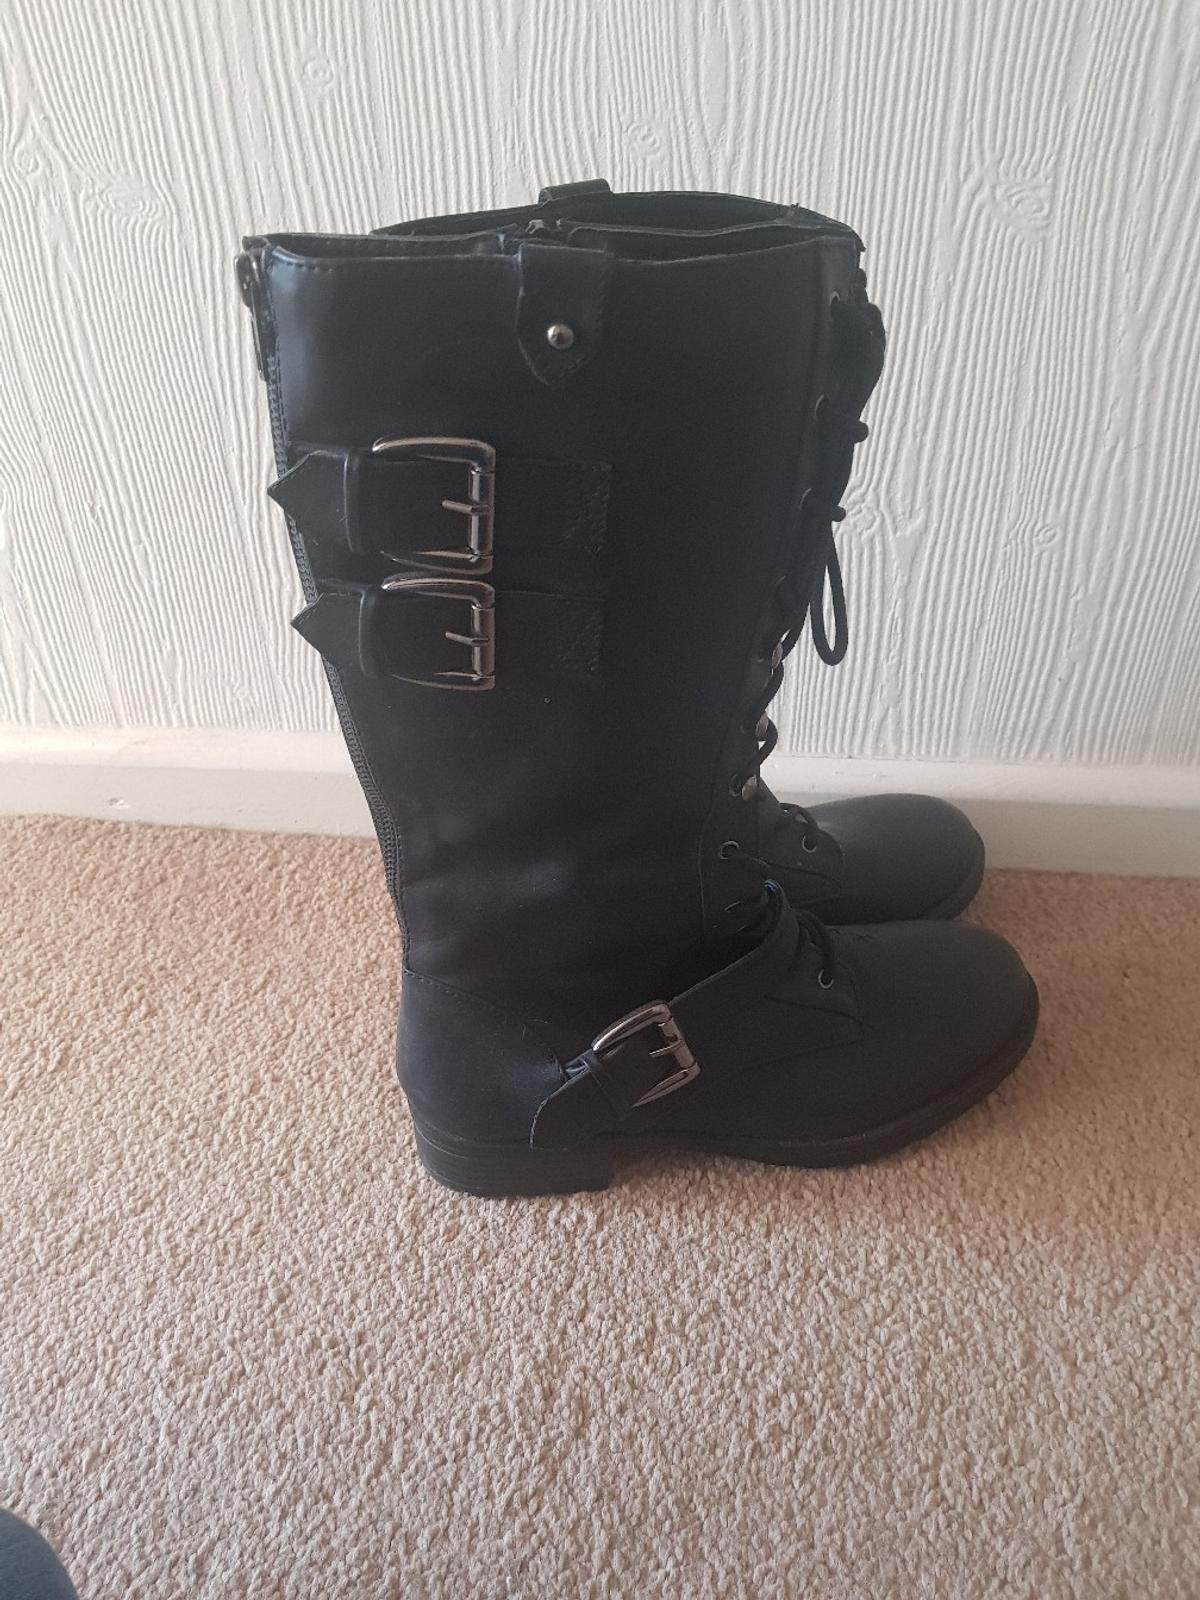 a1d878703bf black biker boots in B97 Redditch for £11.00 for sale - Shpock